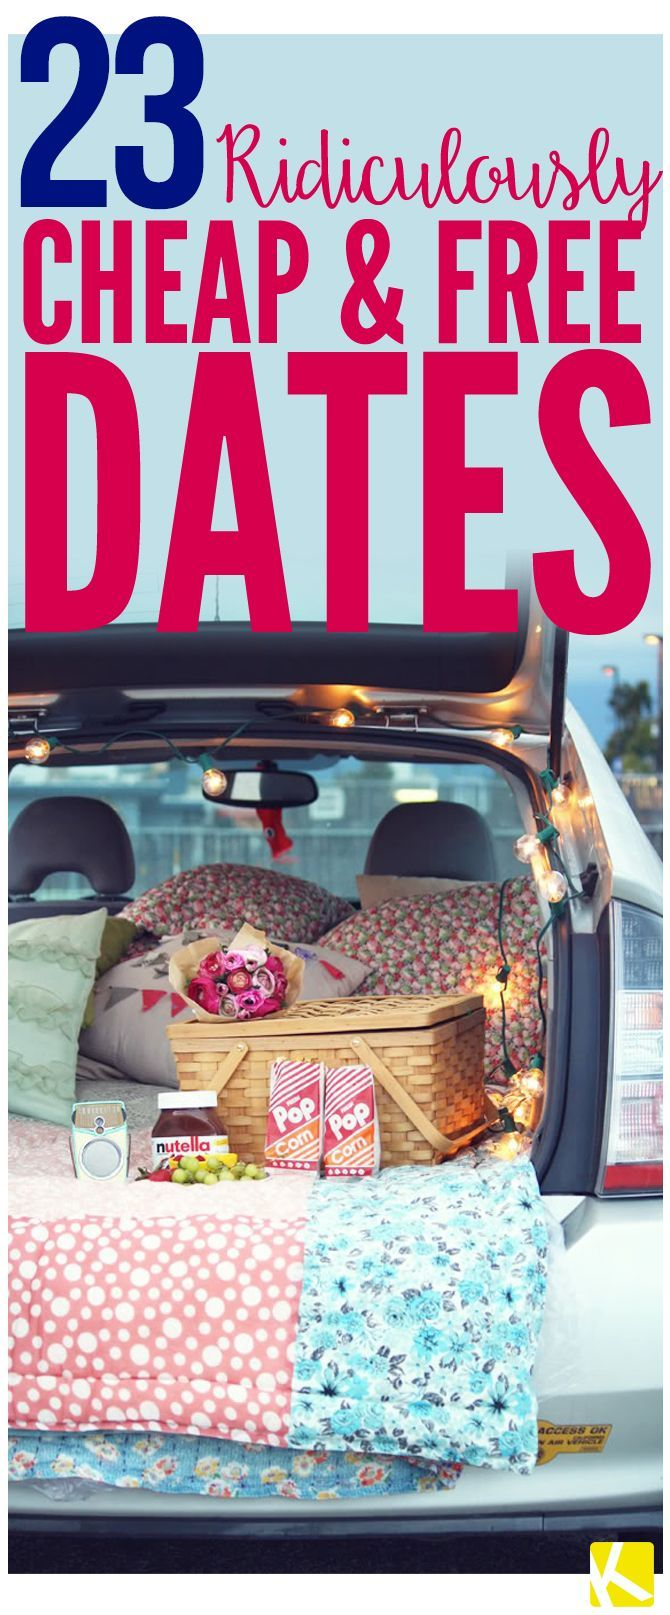 23 ridiculously cheap and free date ideas free and craft